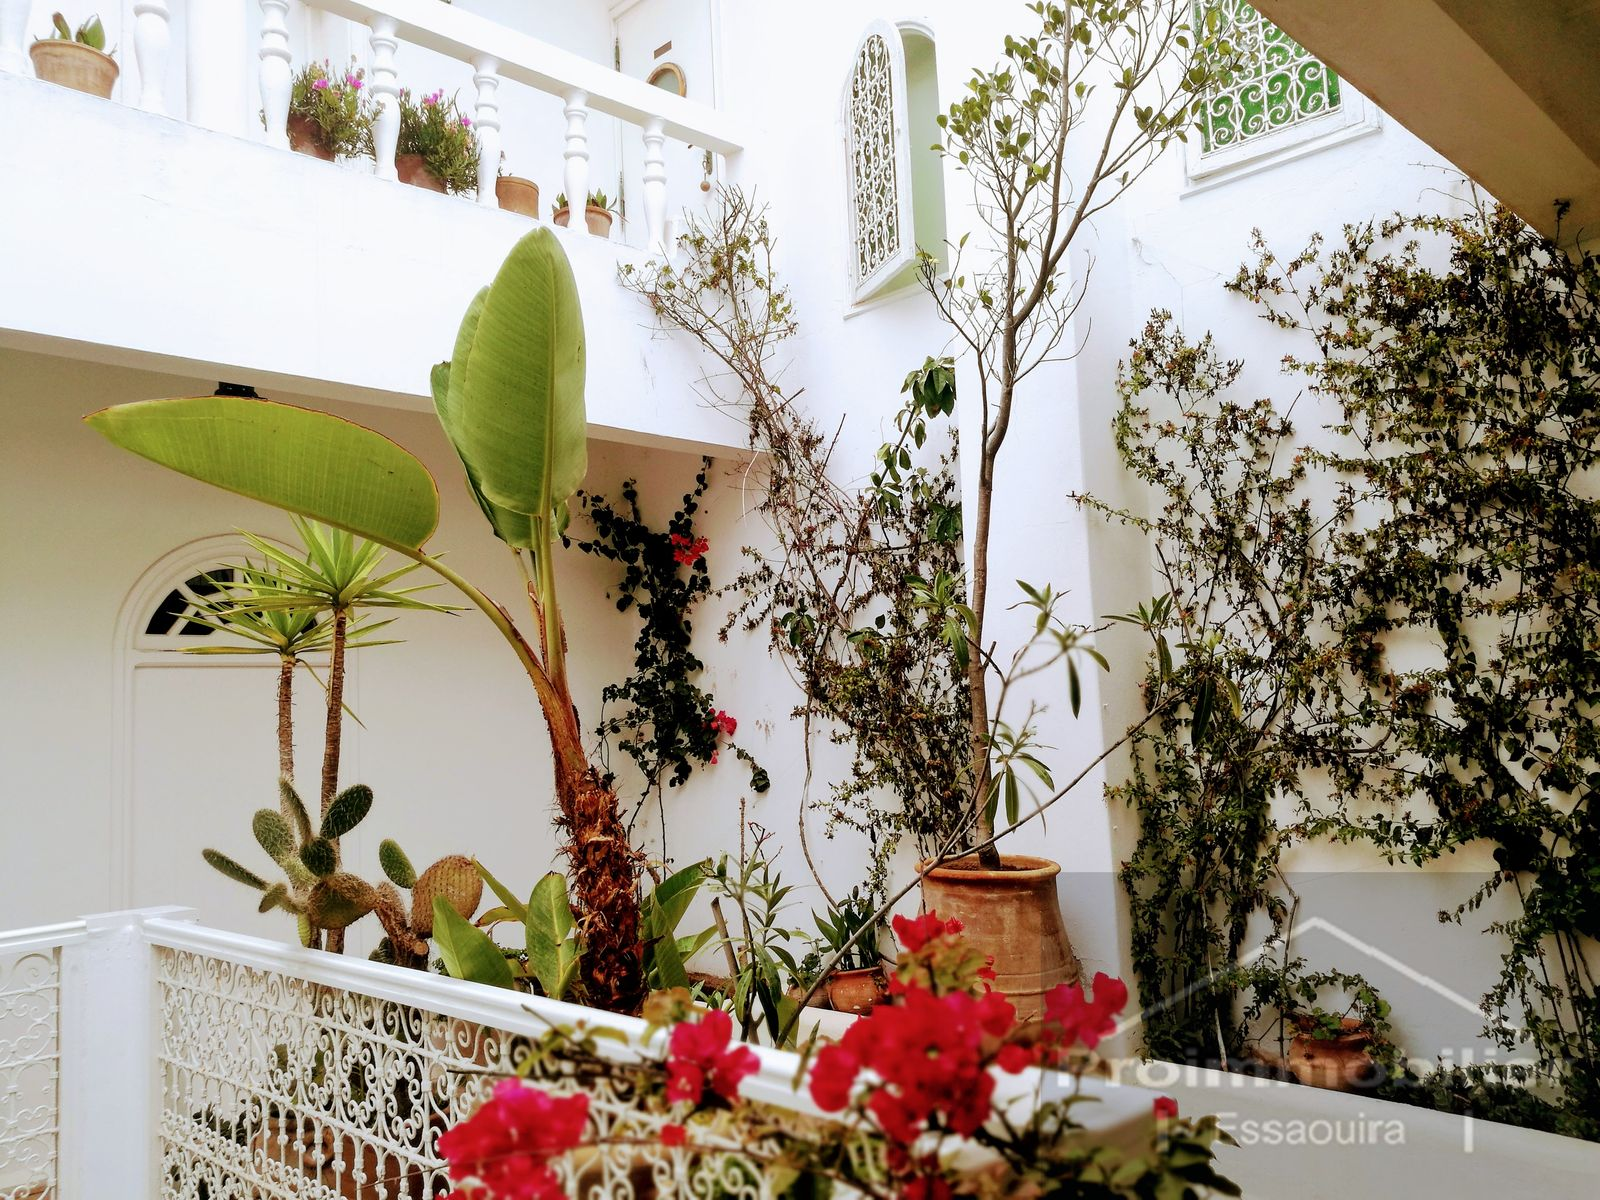 19-11-04-VR Authentic riad about 500 m² with sea view